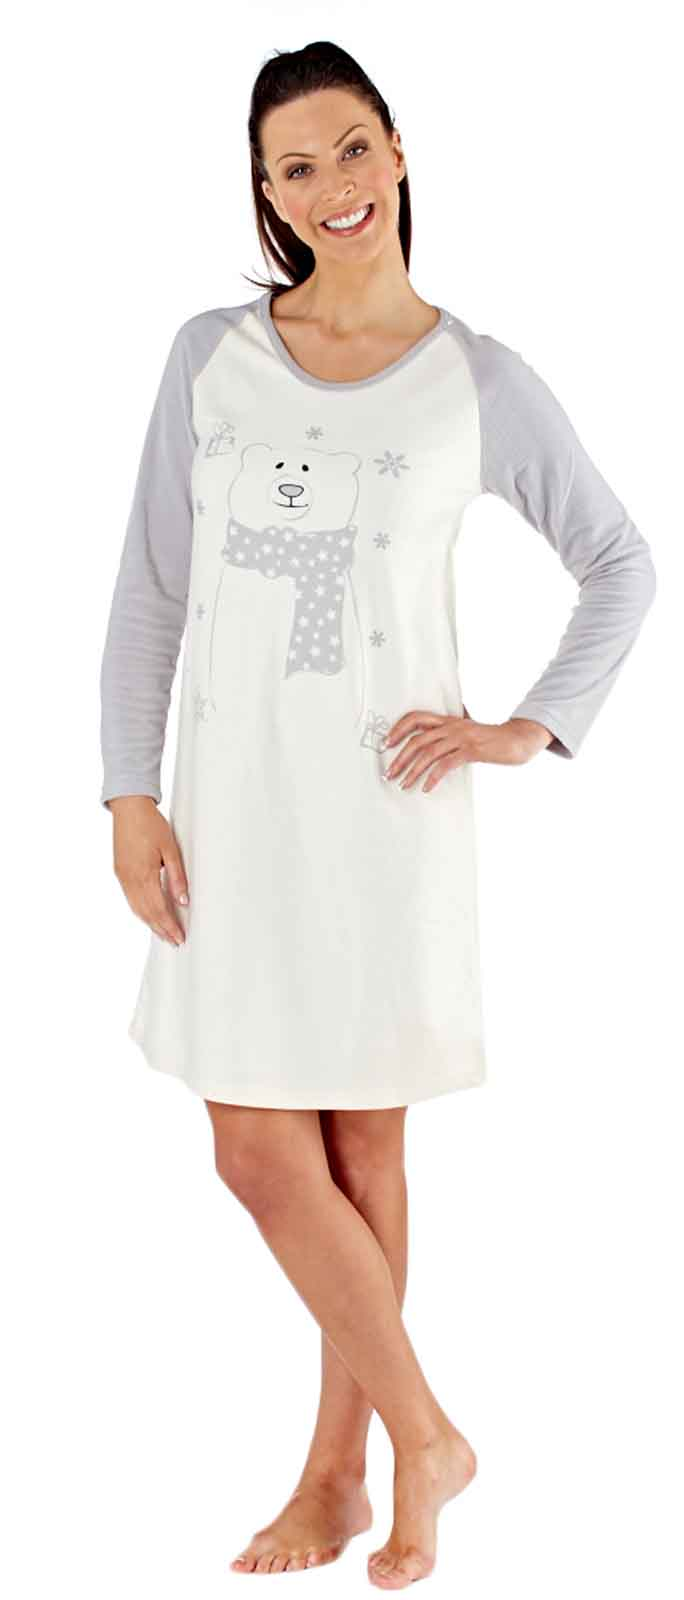 ladies night dress pyjamas - photo #23